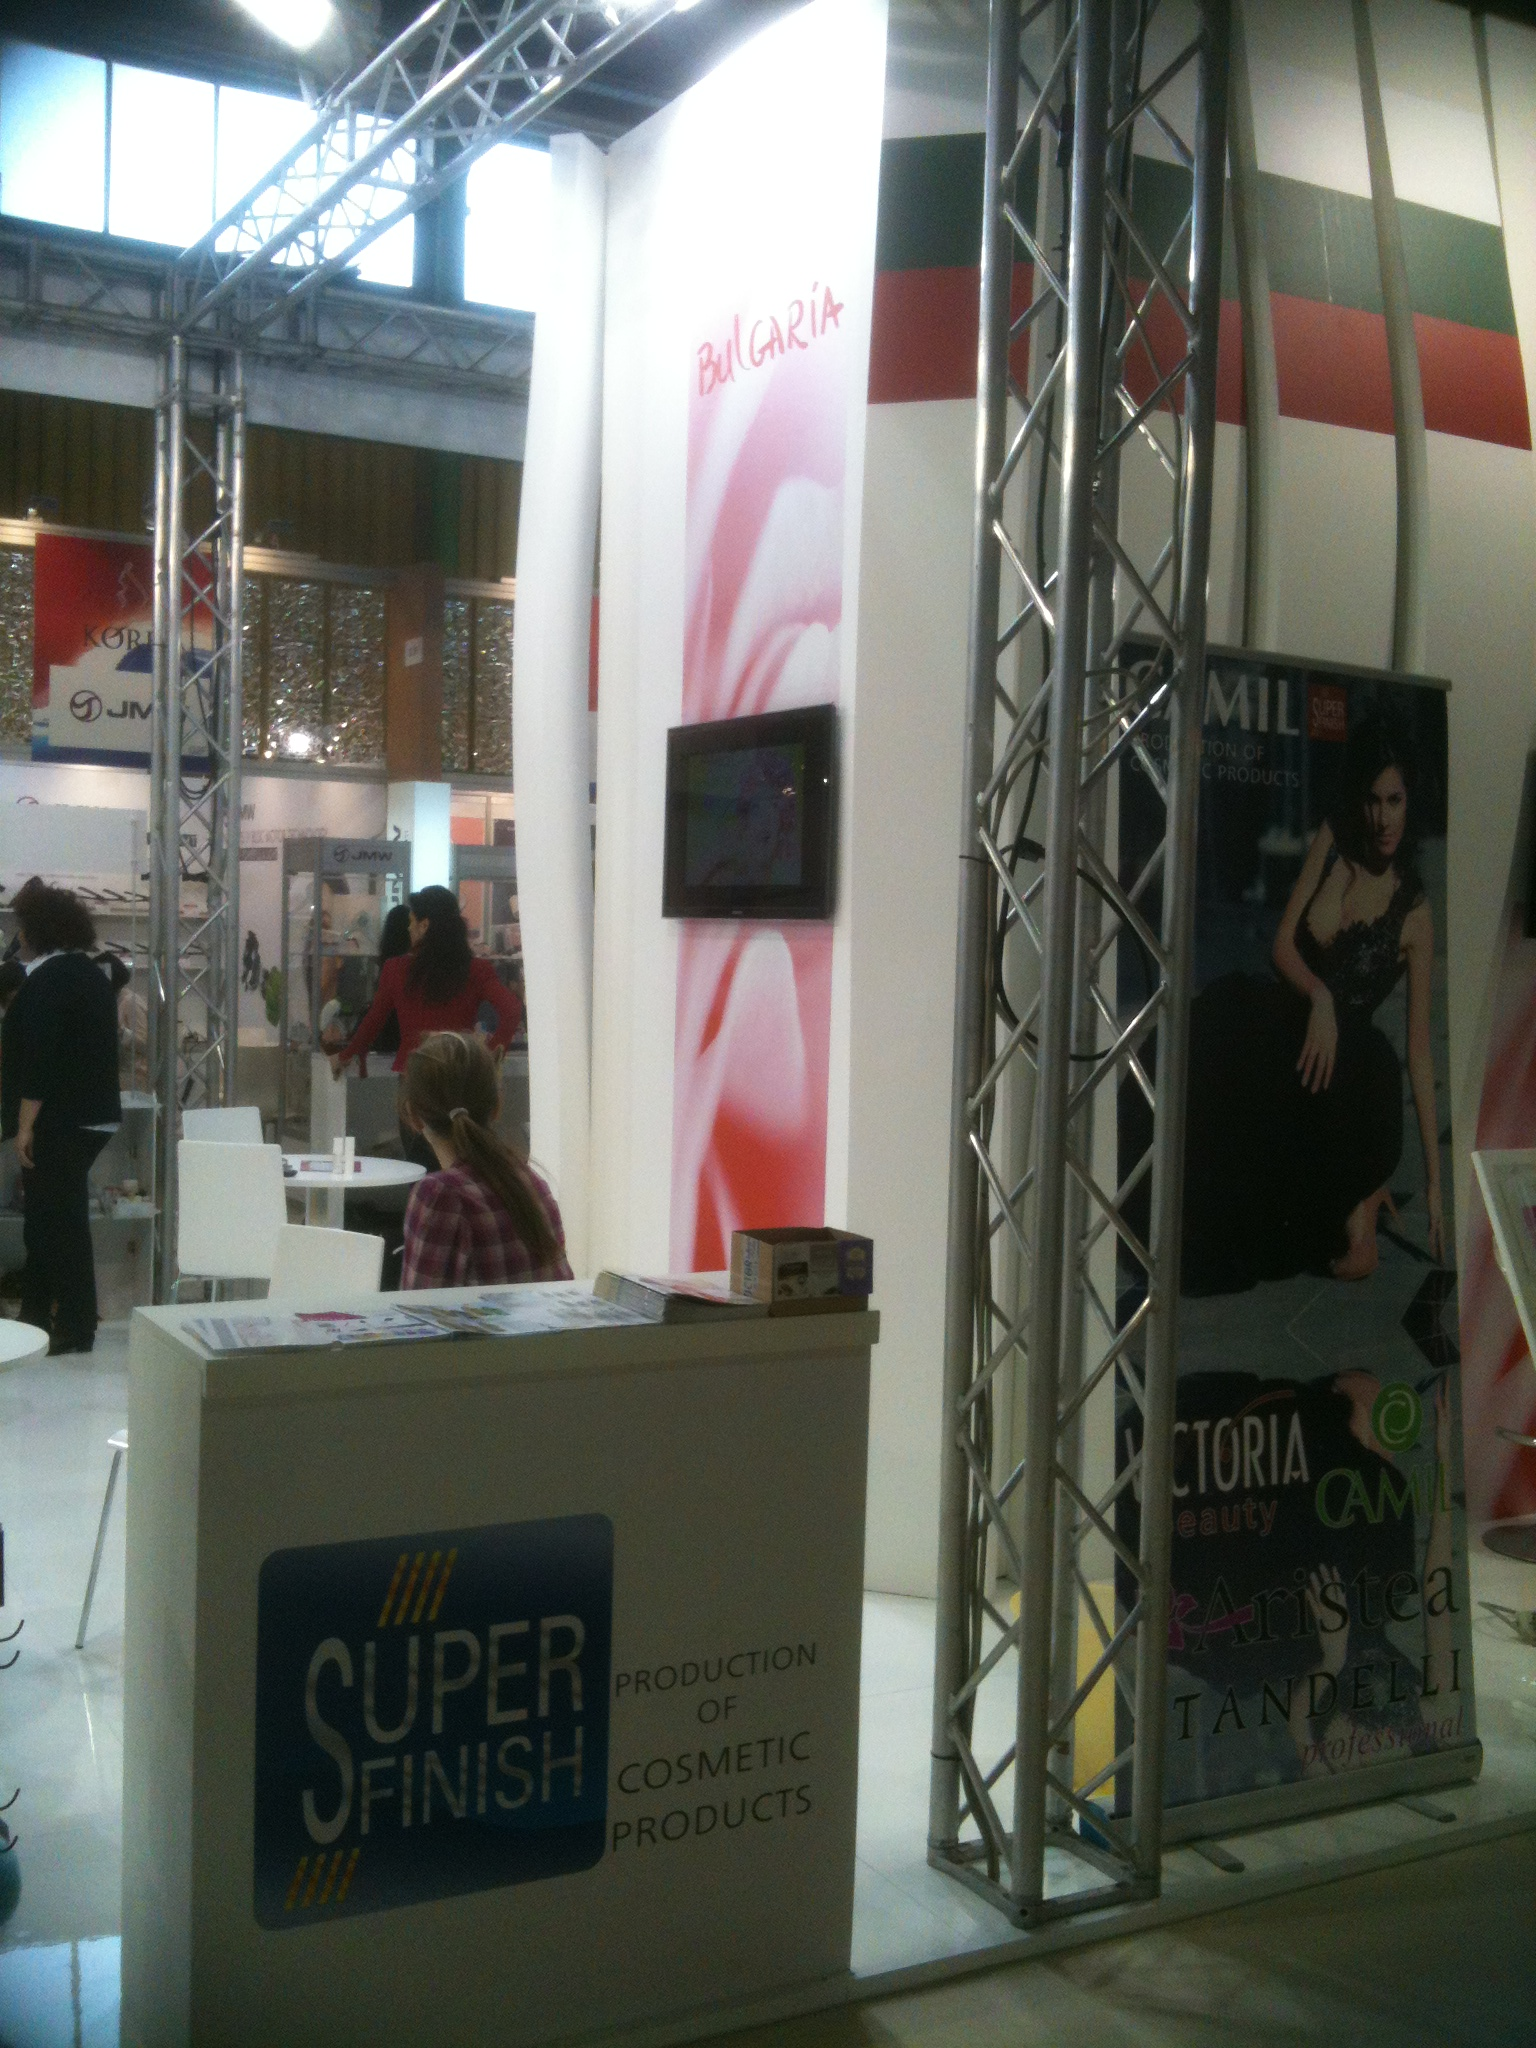 CosmoProf - April 2014, Bologne